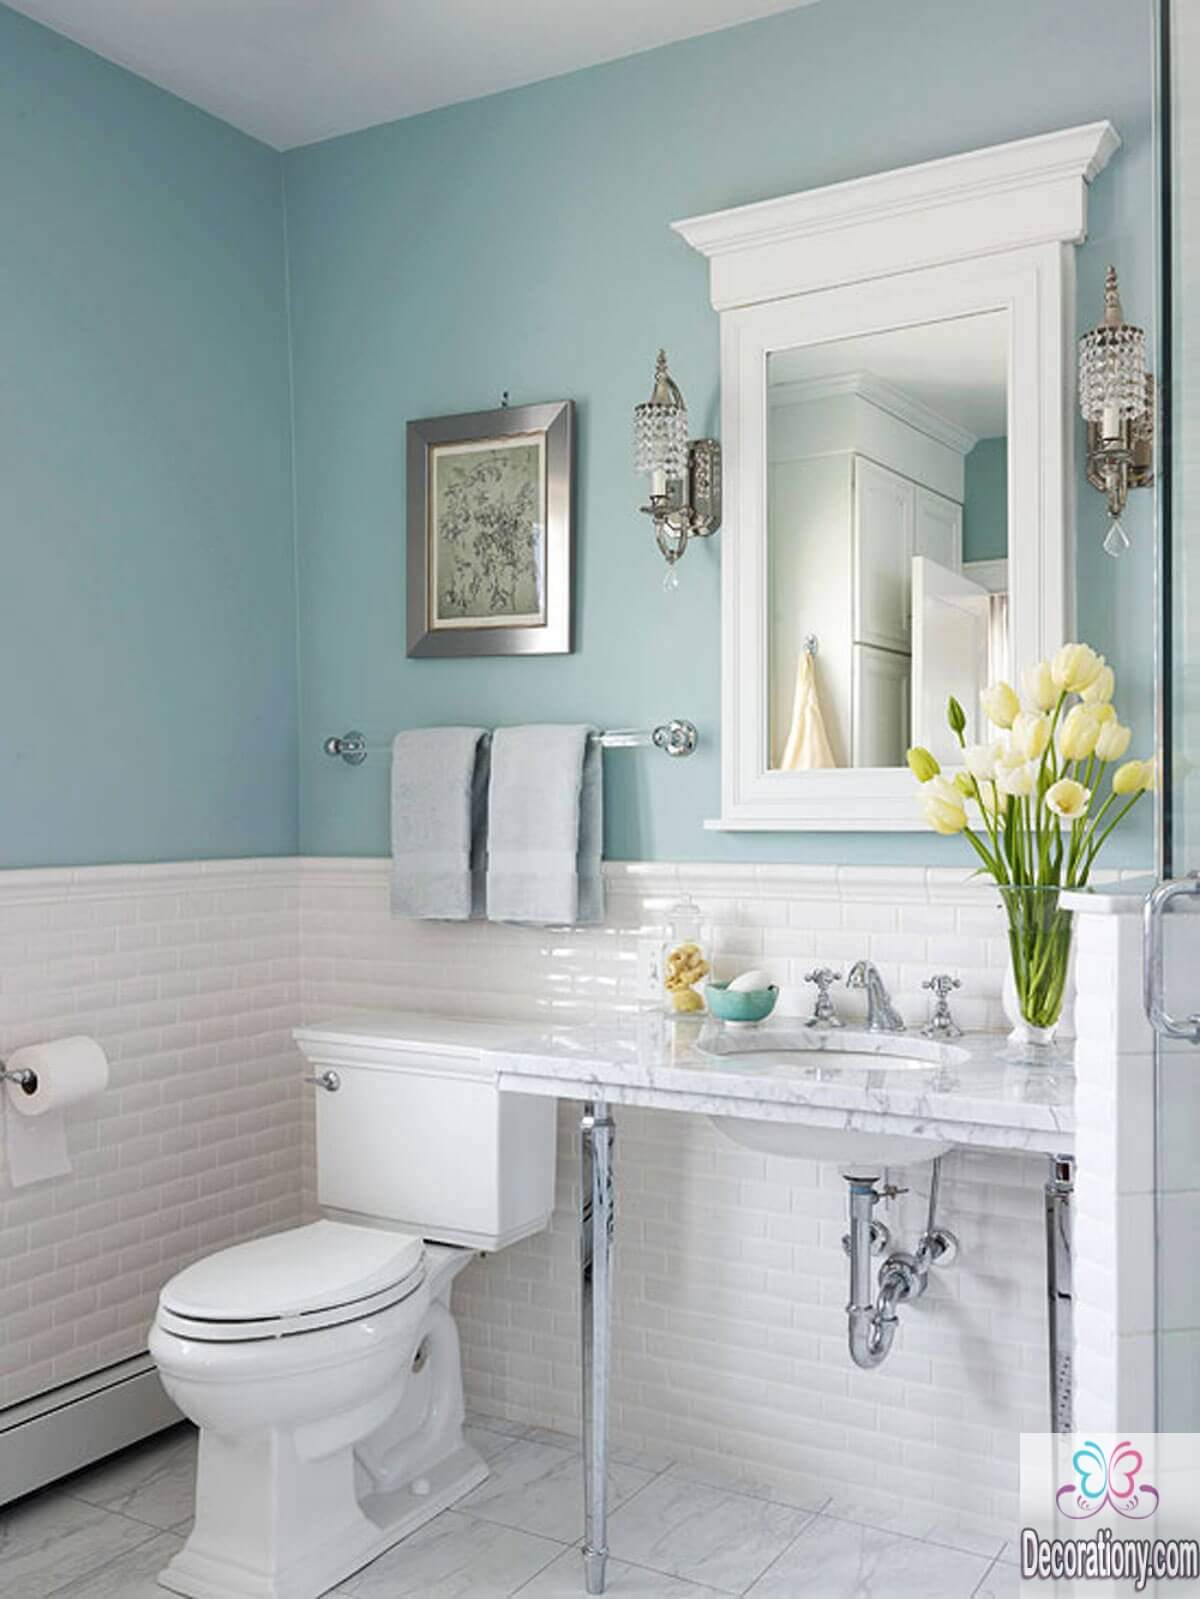 10 affordable colors for small bathrooms decoration y for Bathroom colors for small bathroom